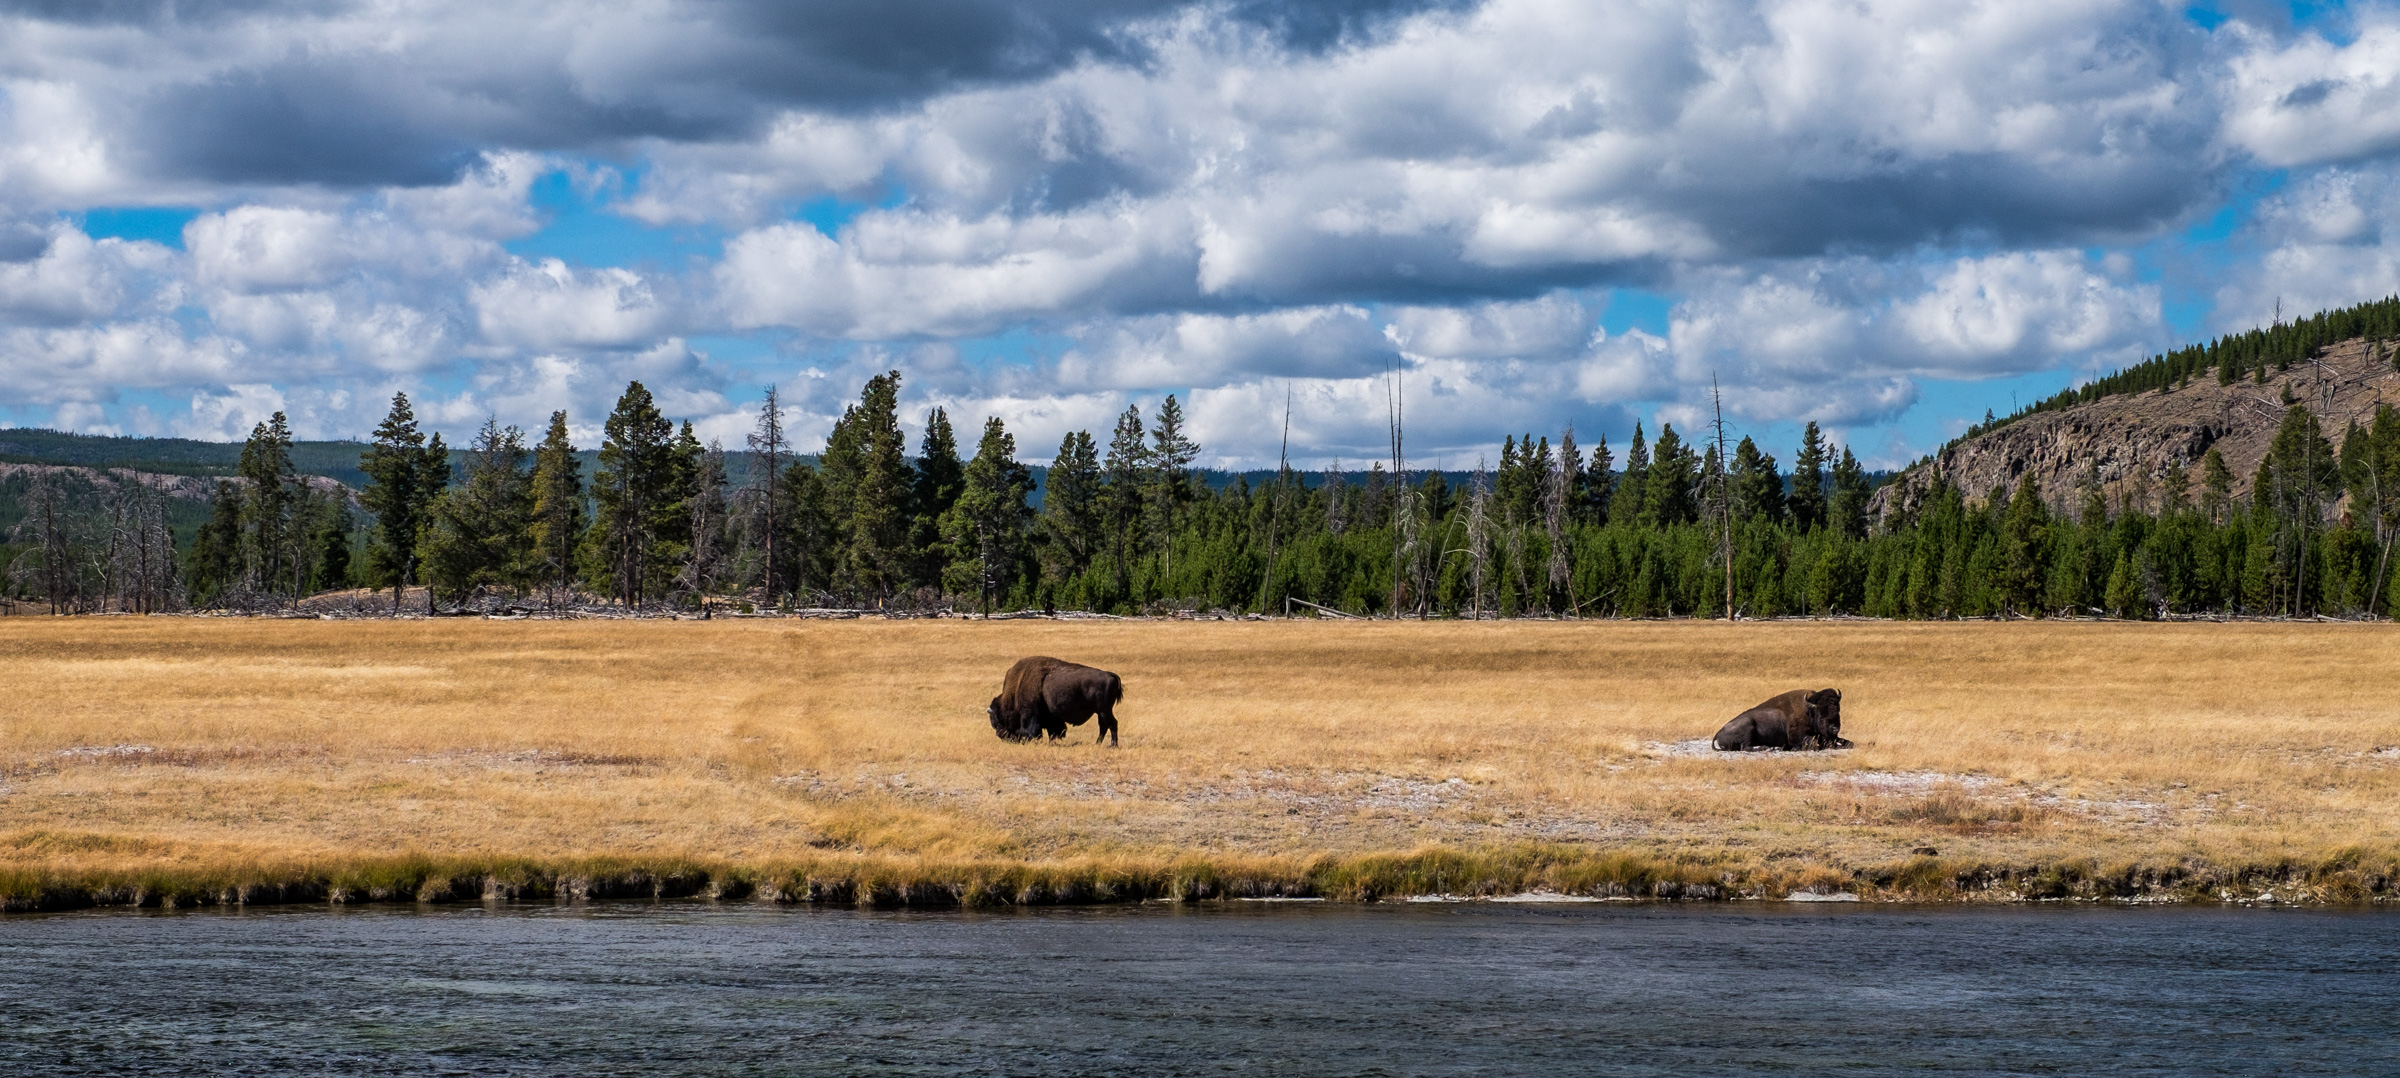 The American Bison is synonymous with Yellowstone Park.